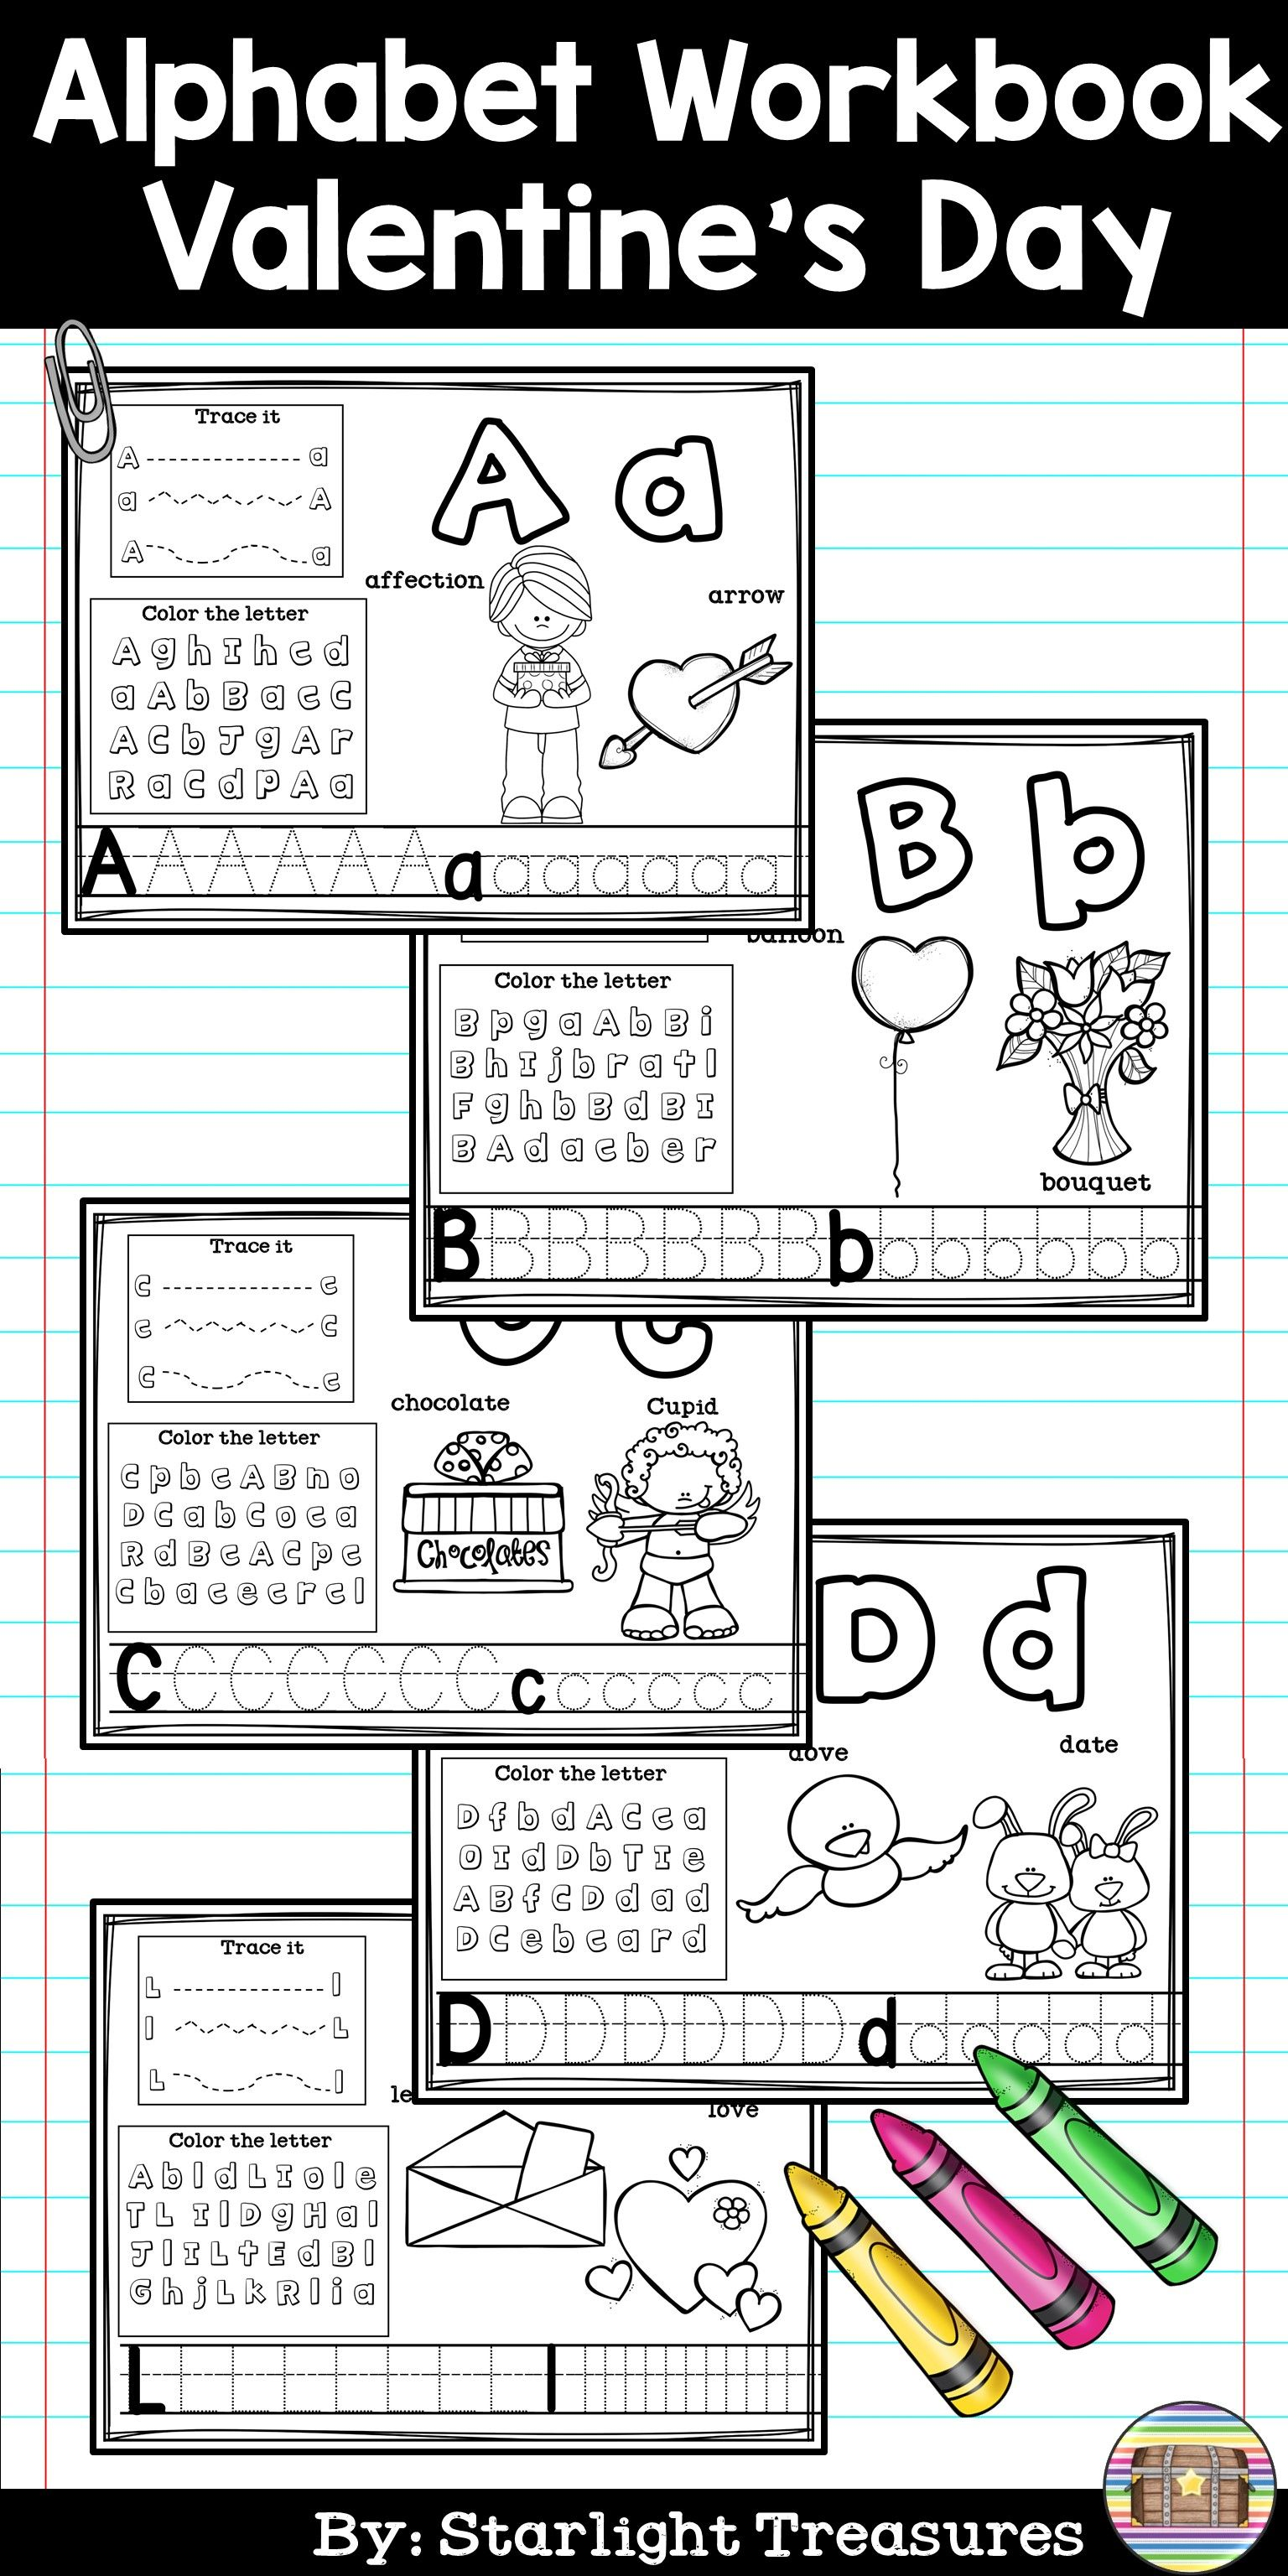 Alphabet Workbook Worksheets A Z Valentine S Day Theme